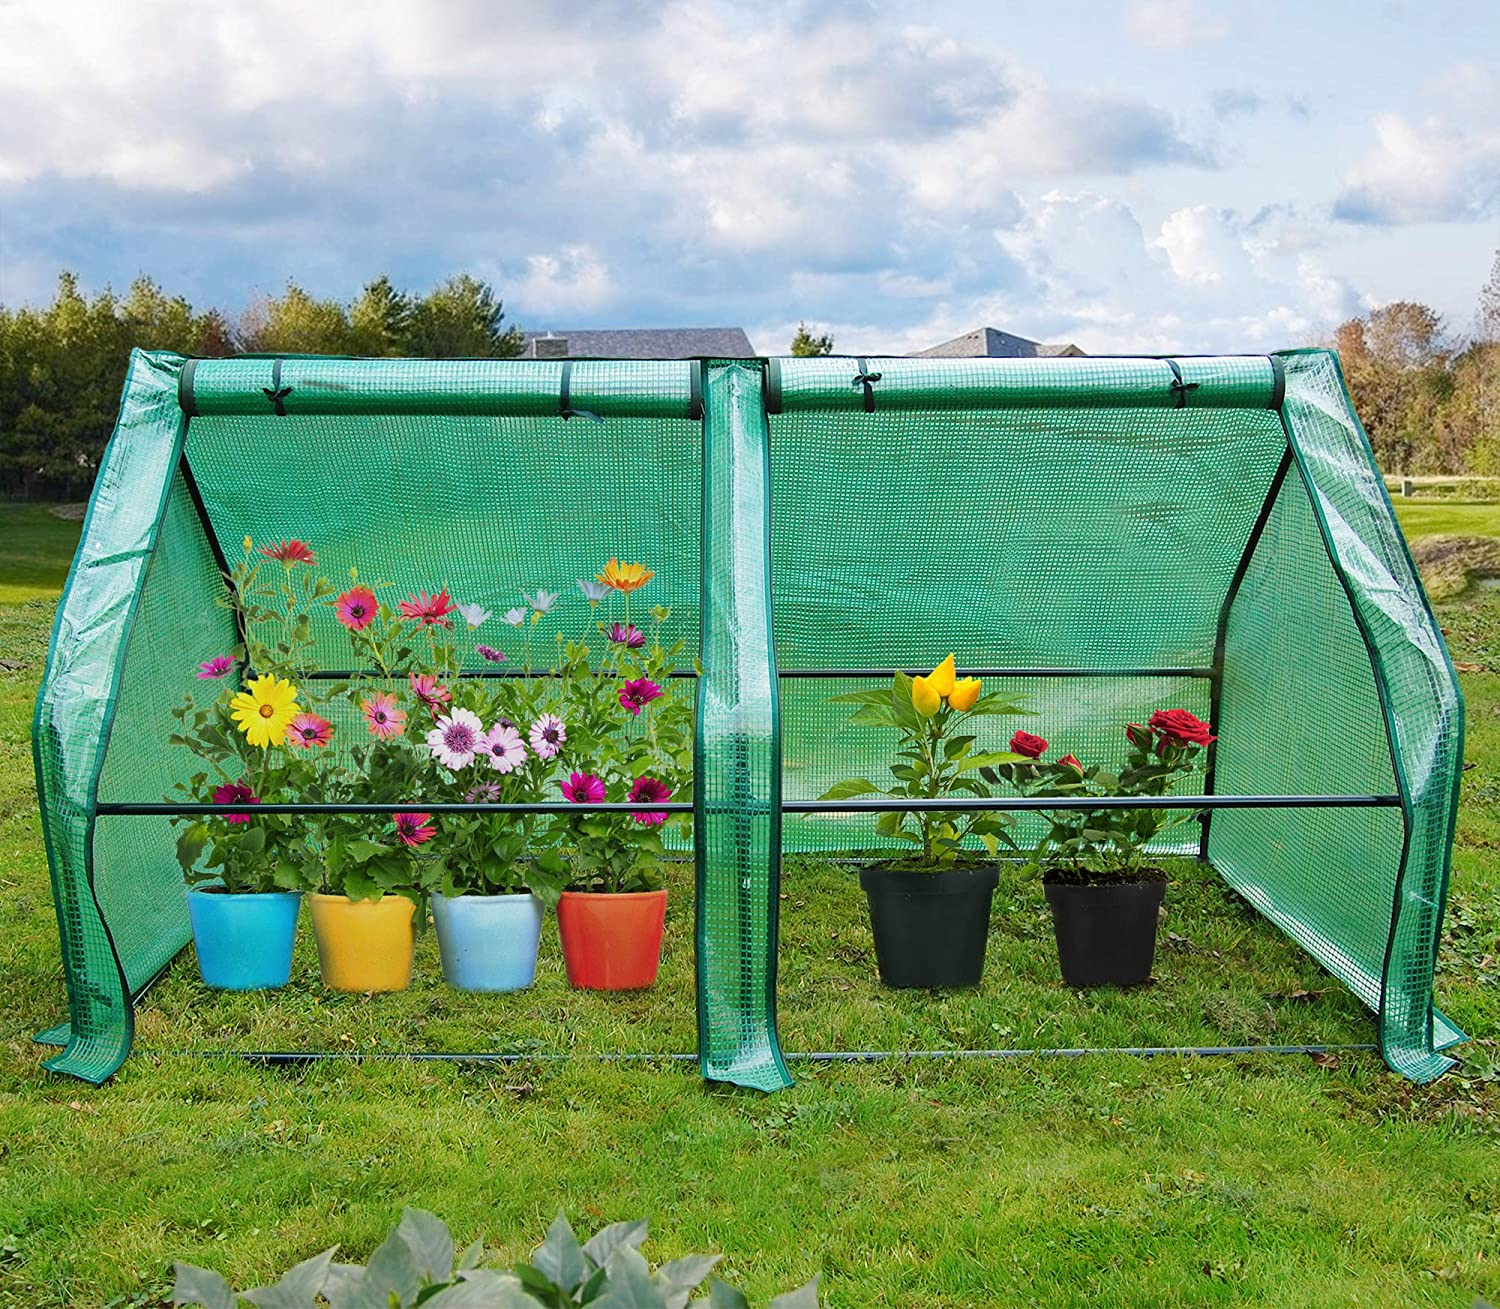 Quictent 71 WX 36 D X 36 H Portable Cloche Mini Greenhouse, Large Zipper Doors Garden Green House – 50 Pcs T-Type Plant Tags Included Green